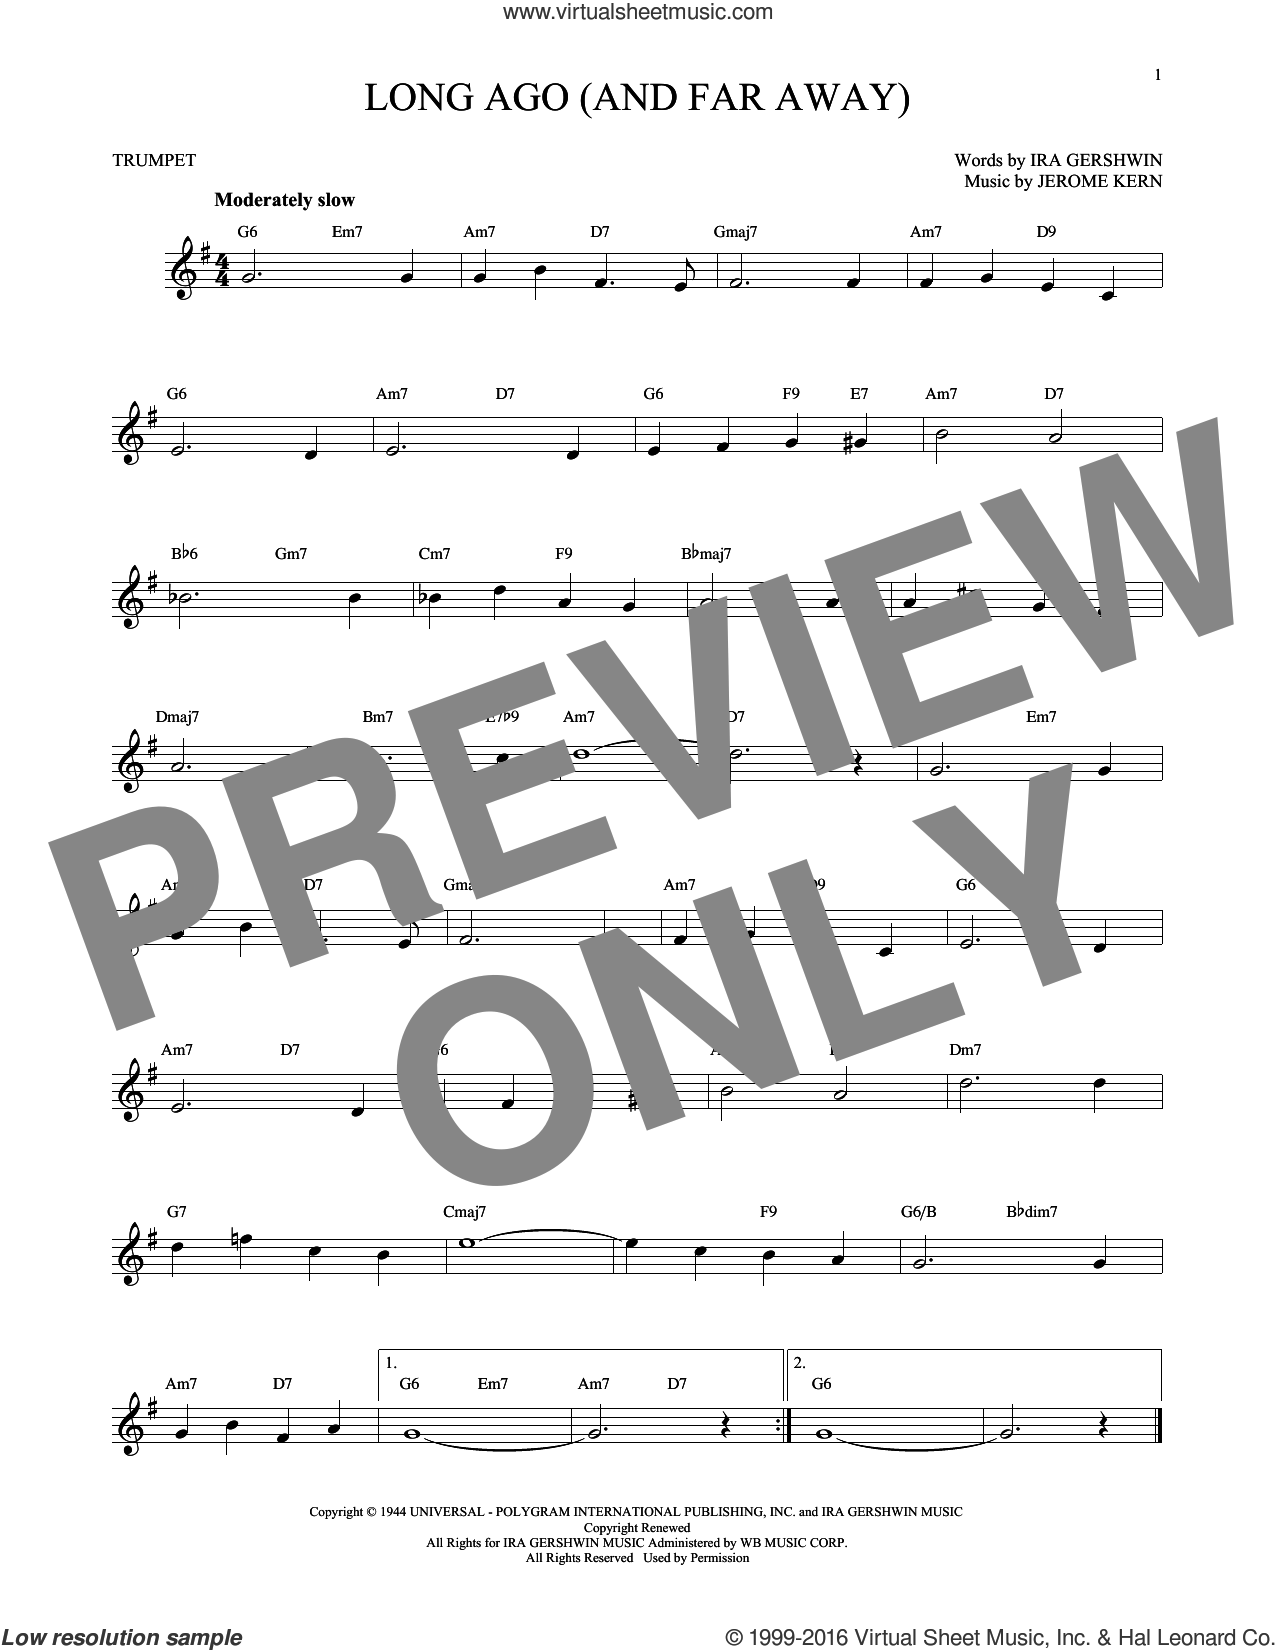 Long Ago (And Far Away) sheet music for trumpet solo by Ira Gershwin and Jerome Kern, intermediate skill level